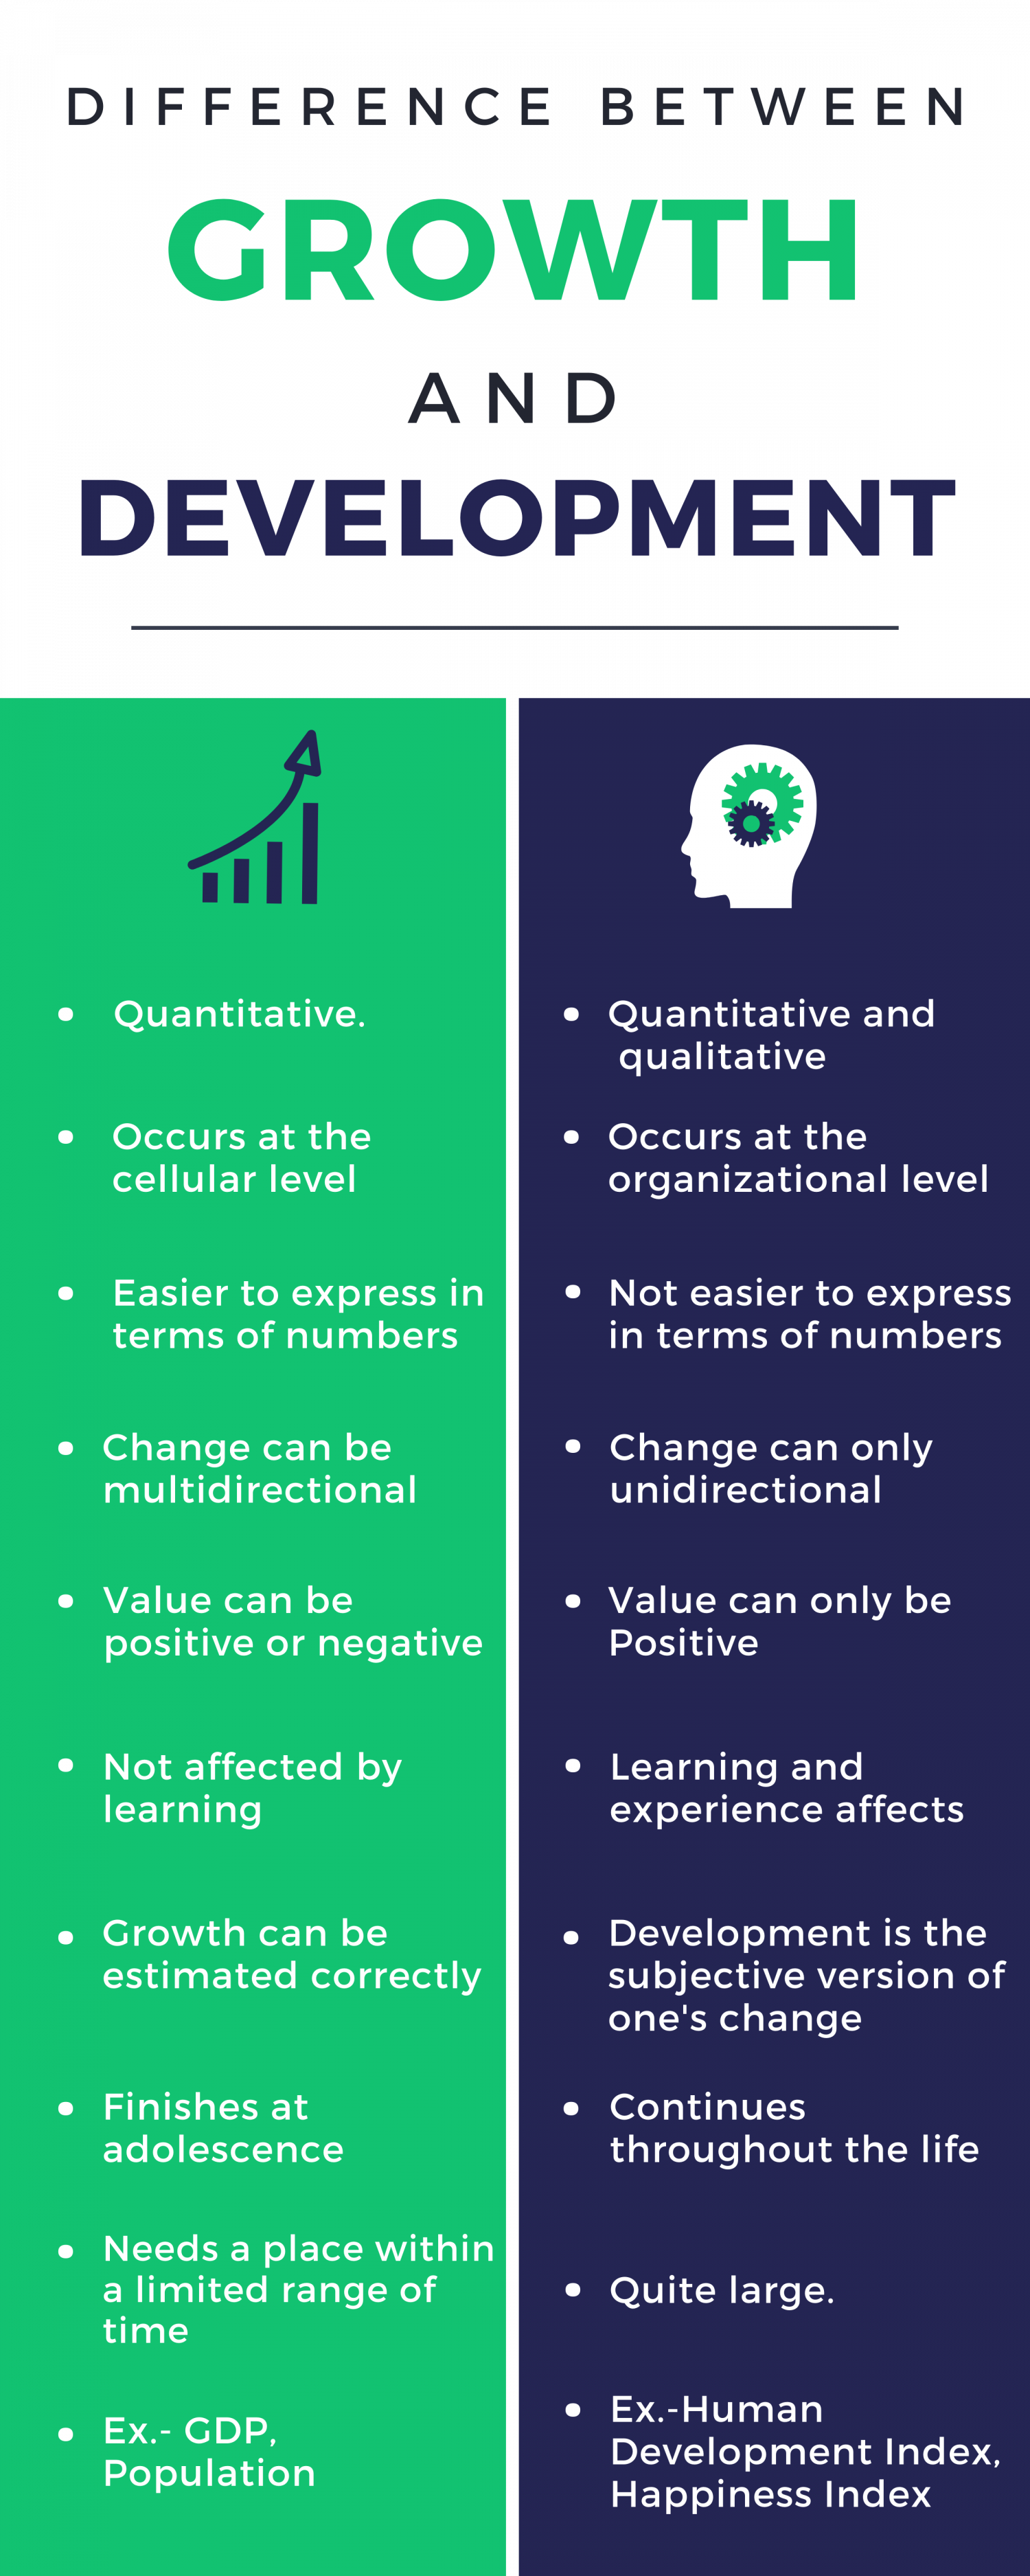 Difference Between Growth and Development Infographic